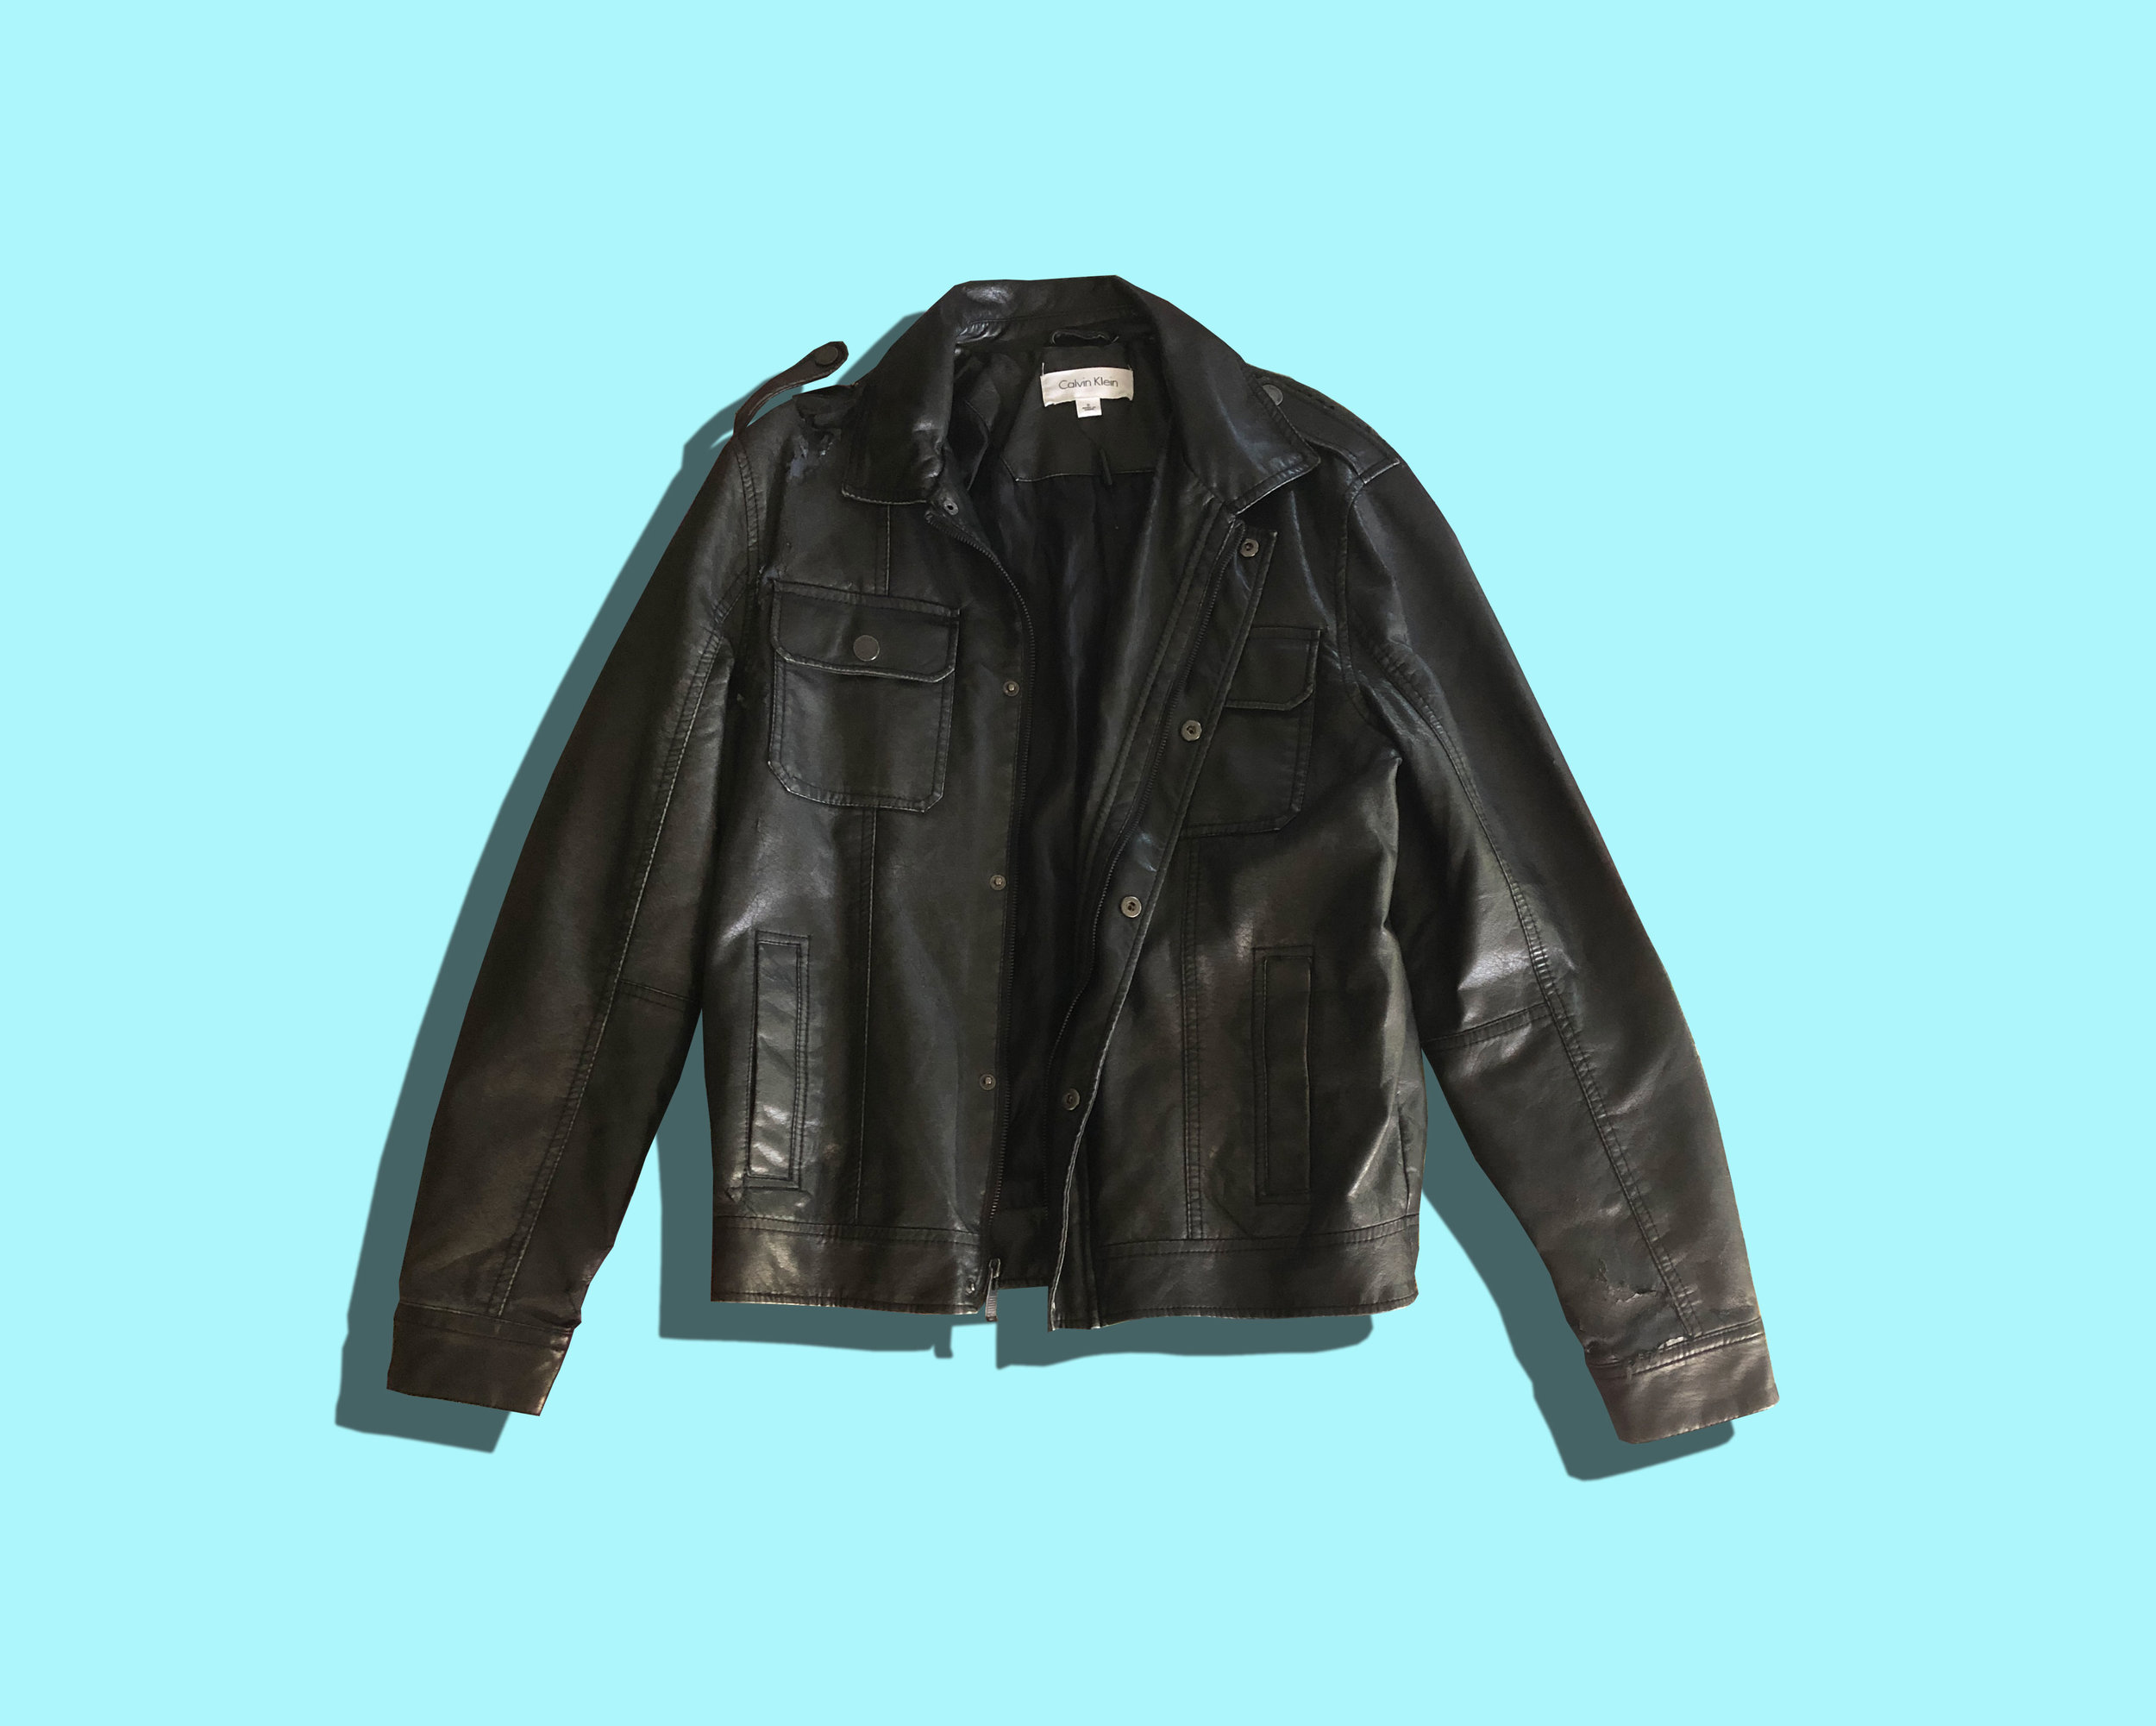 jacket deconstruction - The back of my faux-leather thrift store jacket is peeling off, so I decided to cut away the good material and make something new out of it.(in progress)